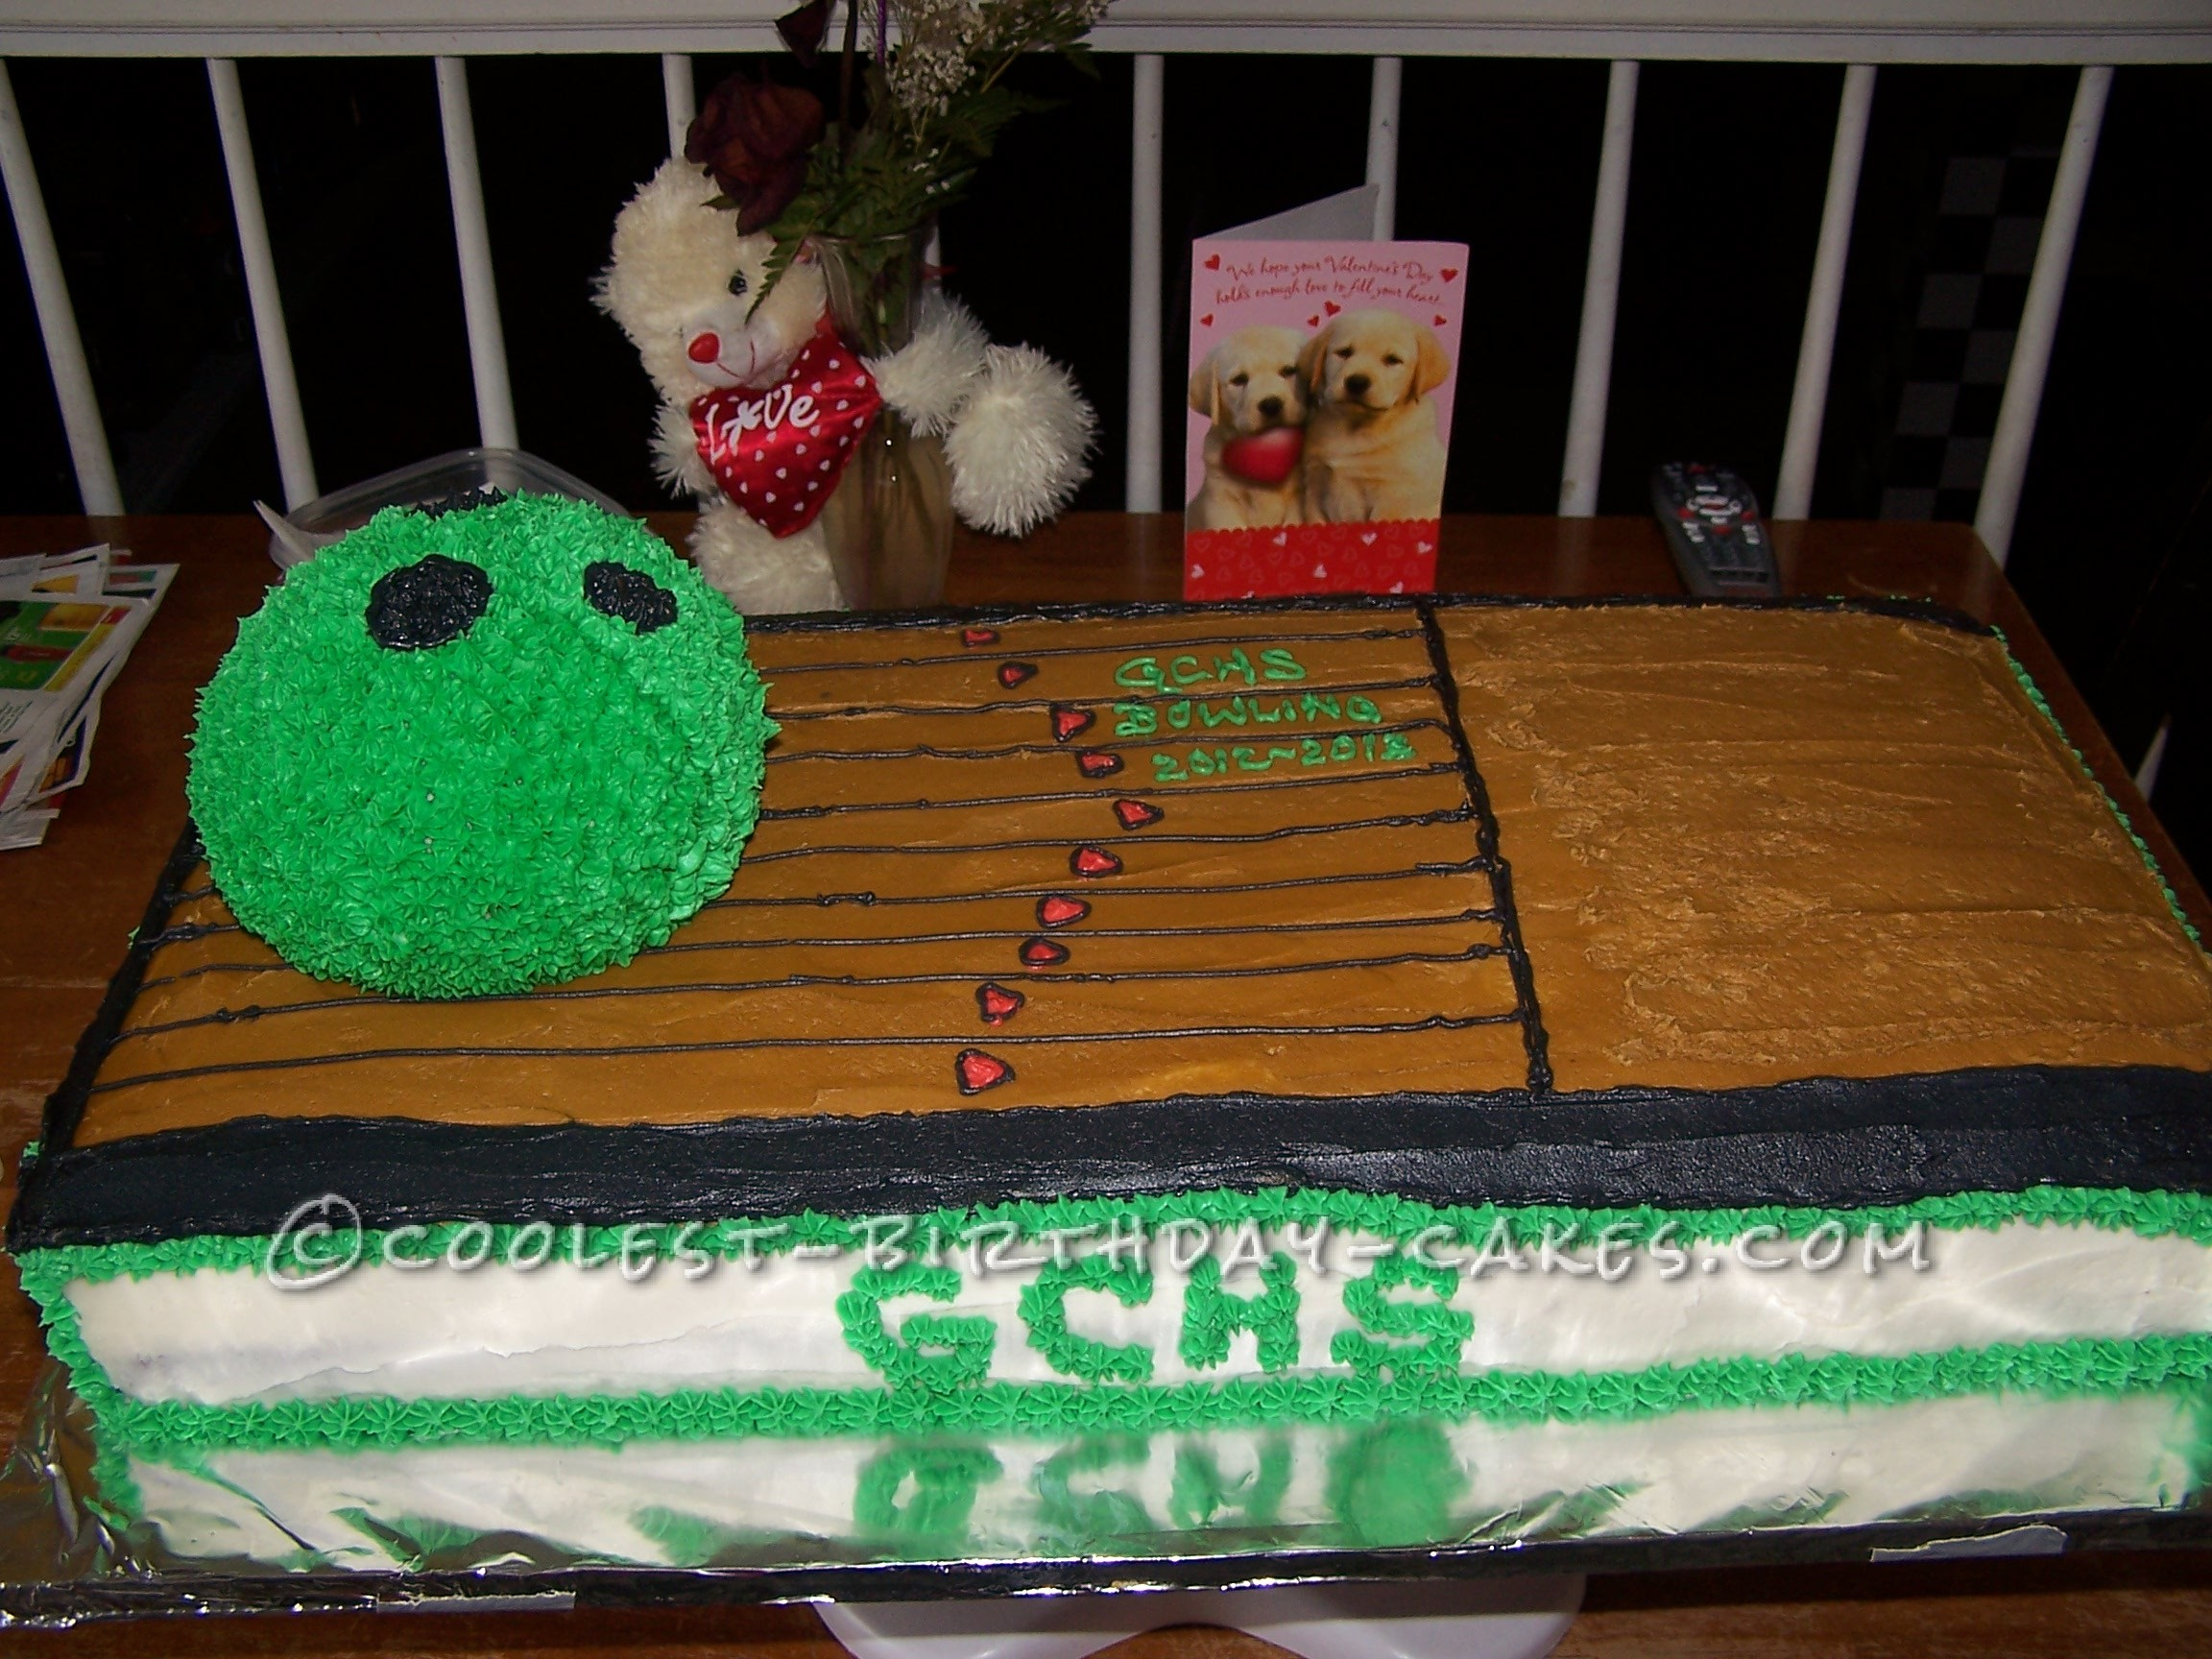 Coolest Bowling Cake